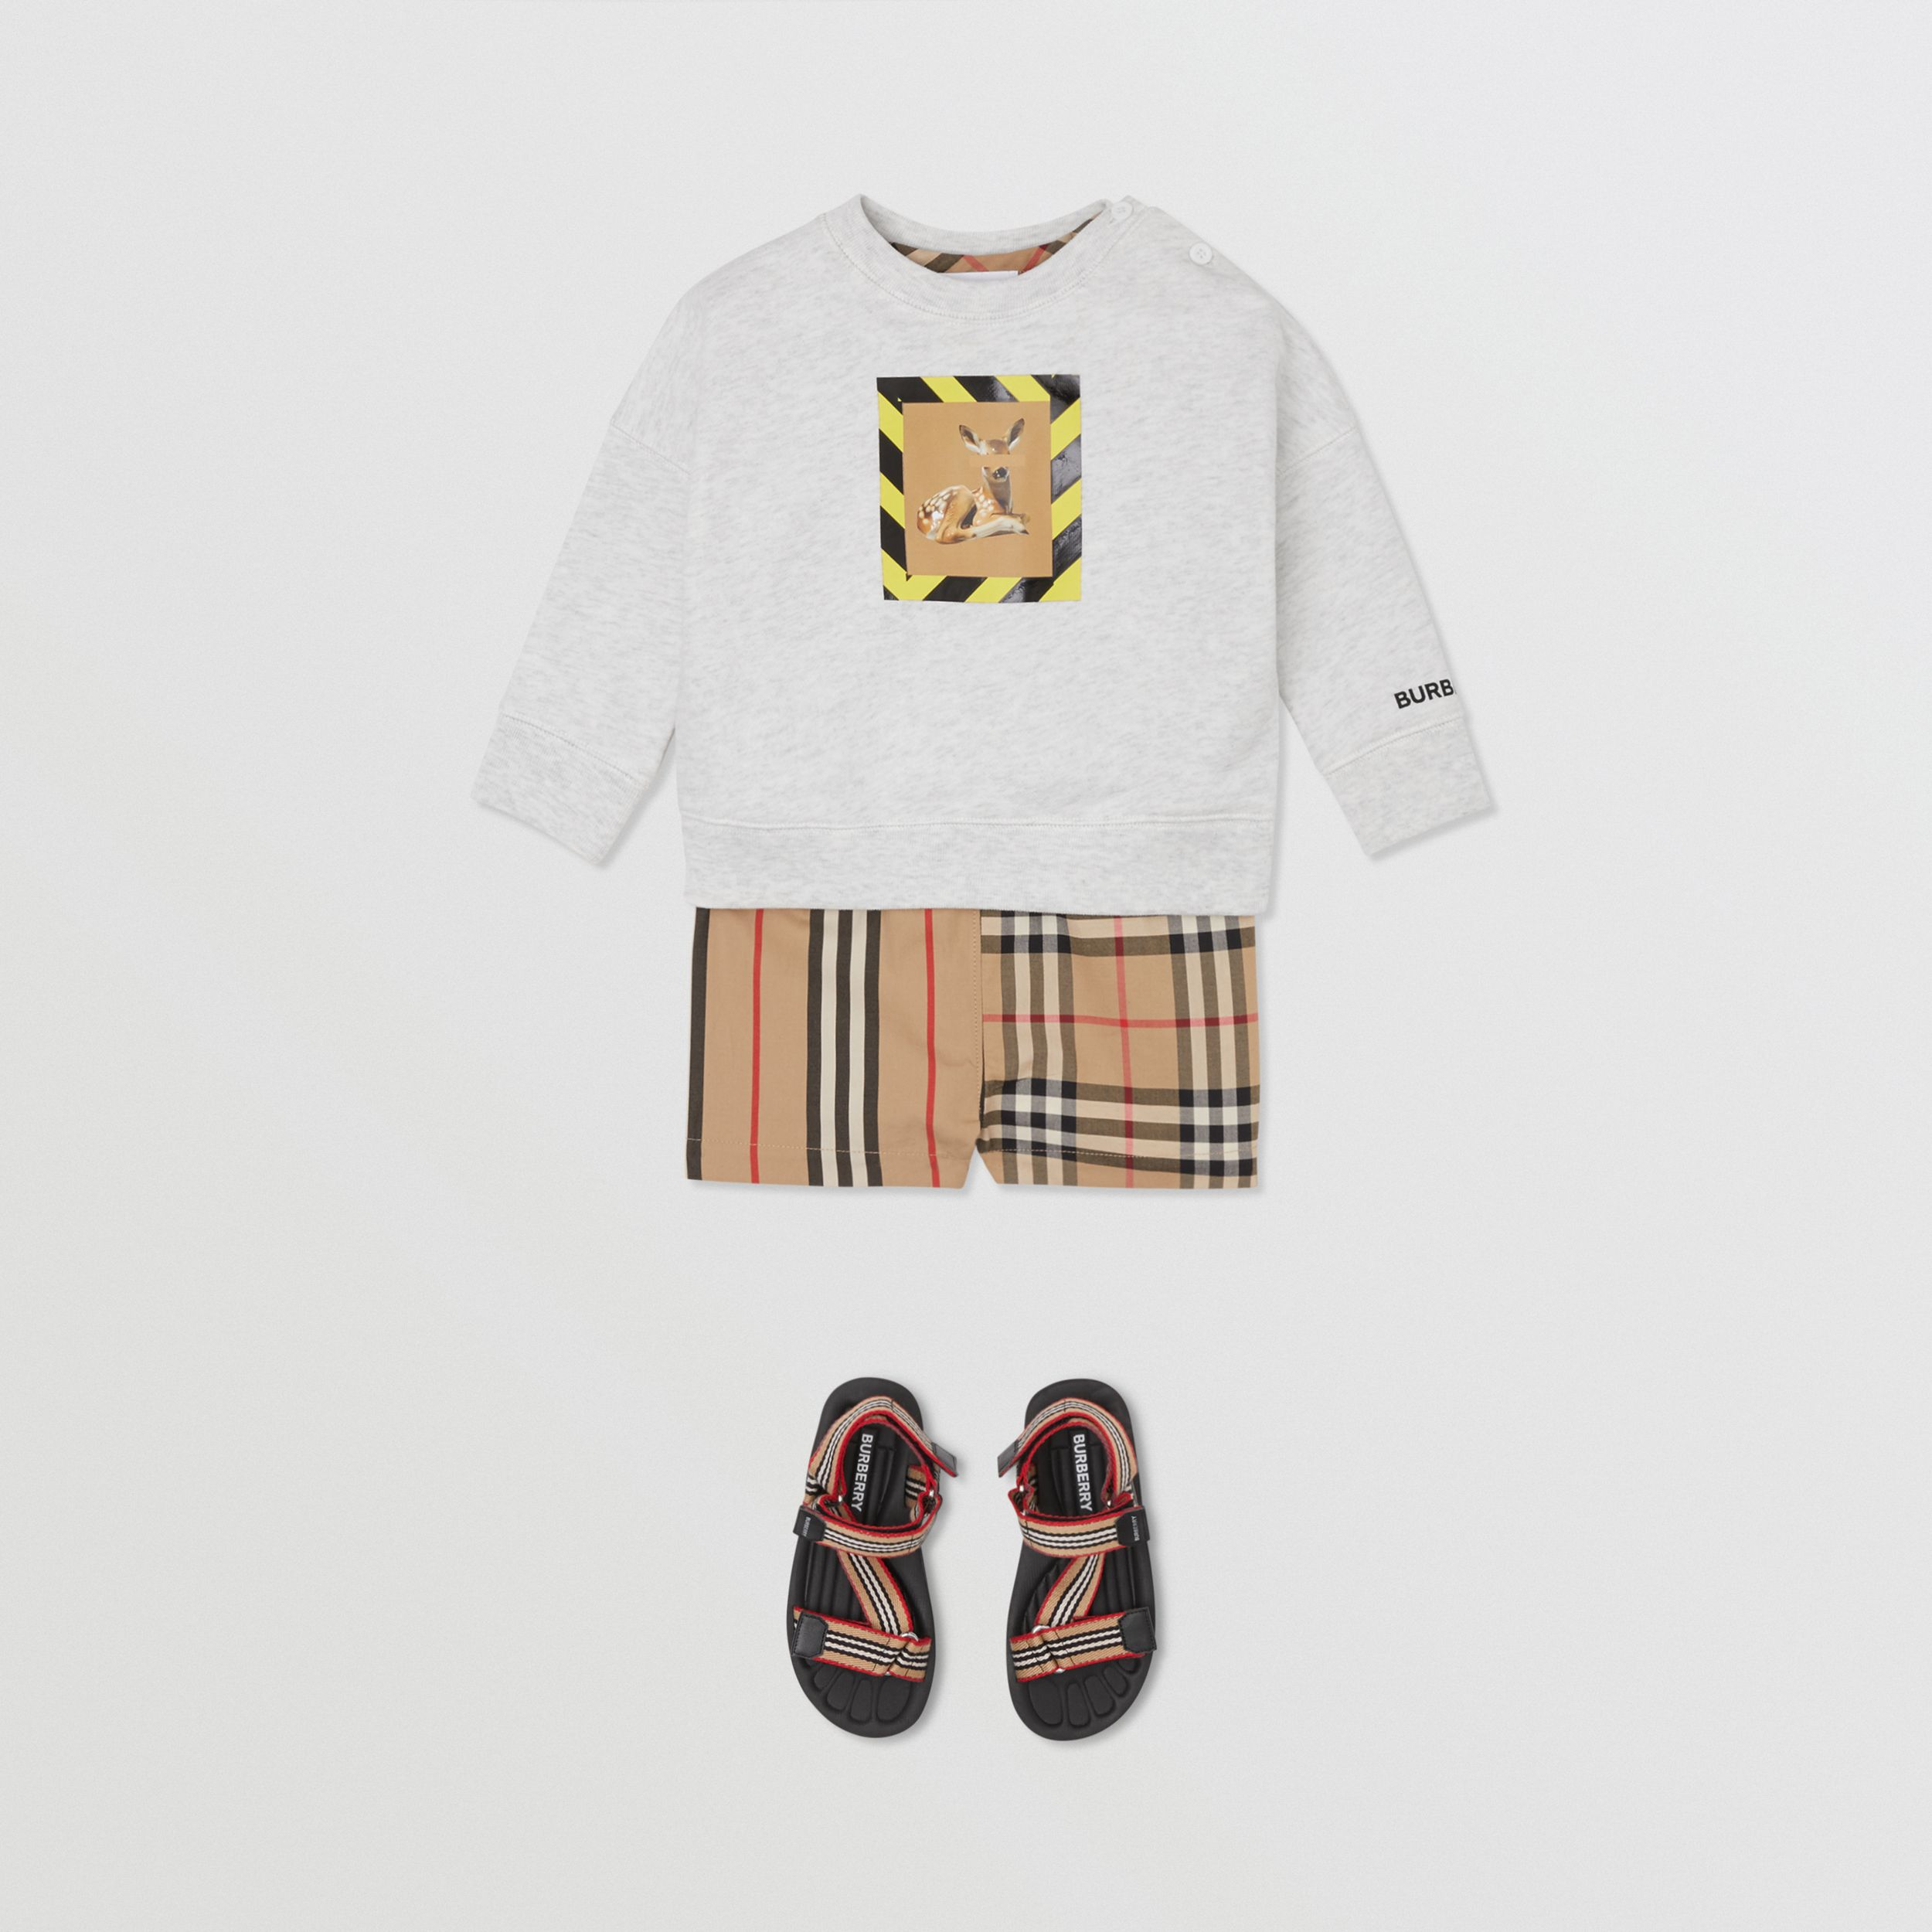 Deer Print Cotton Sweatshirt in White Melange - Children | Burberry - 3